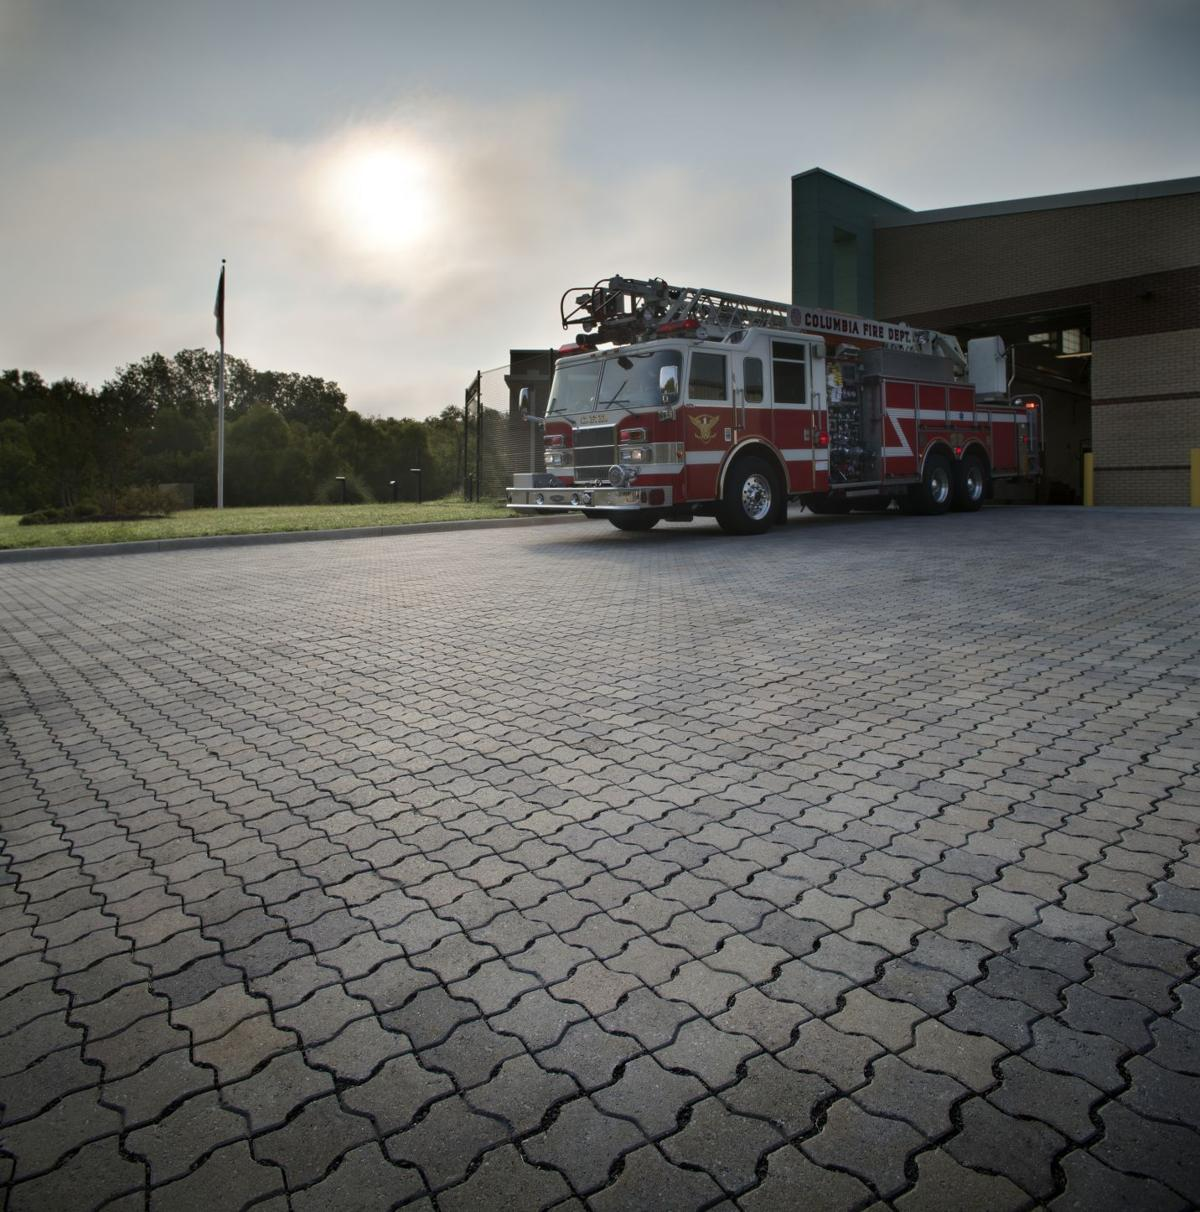 Can you park heavy vehicles on a concrete paver driveway?